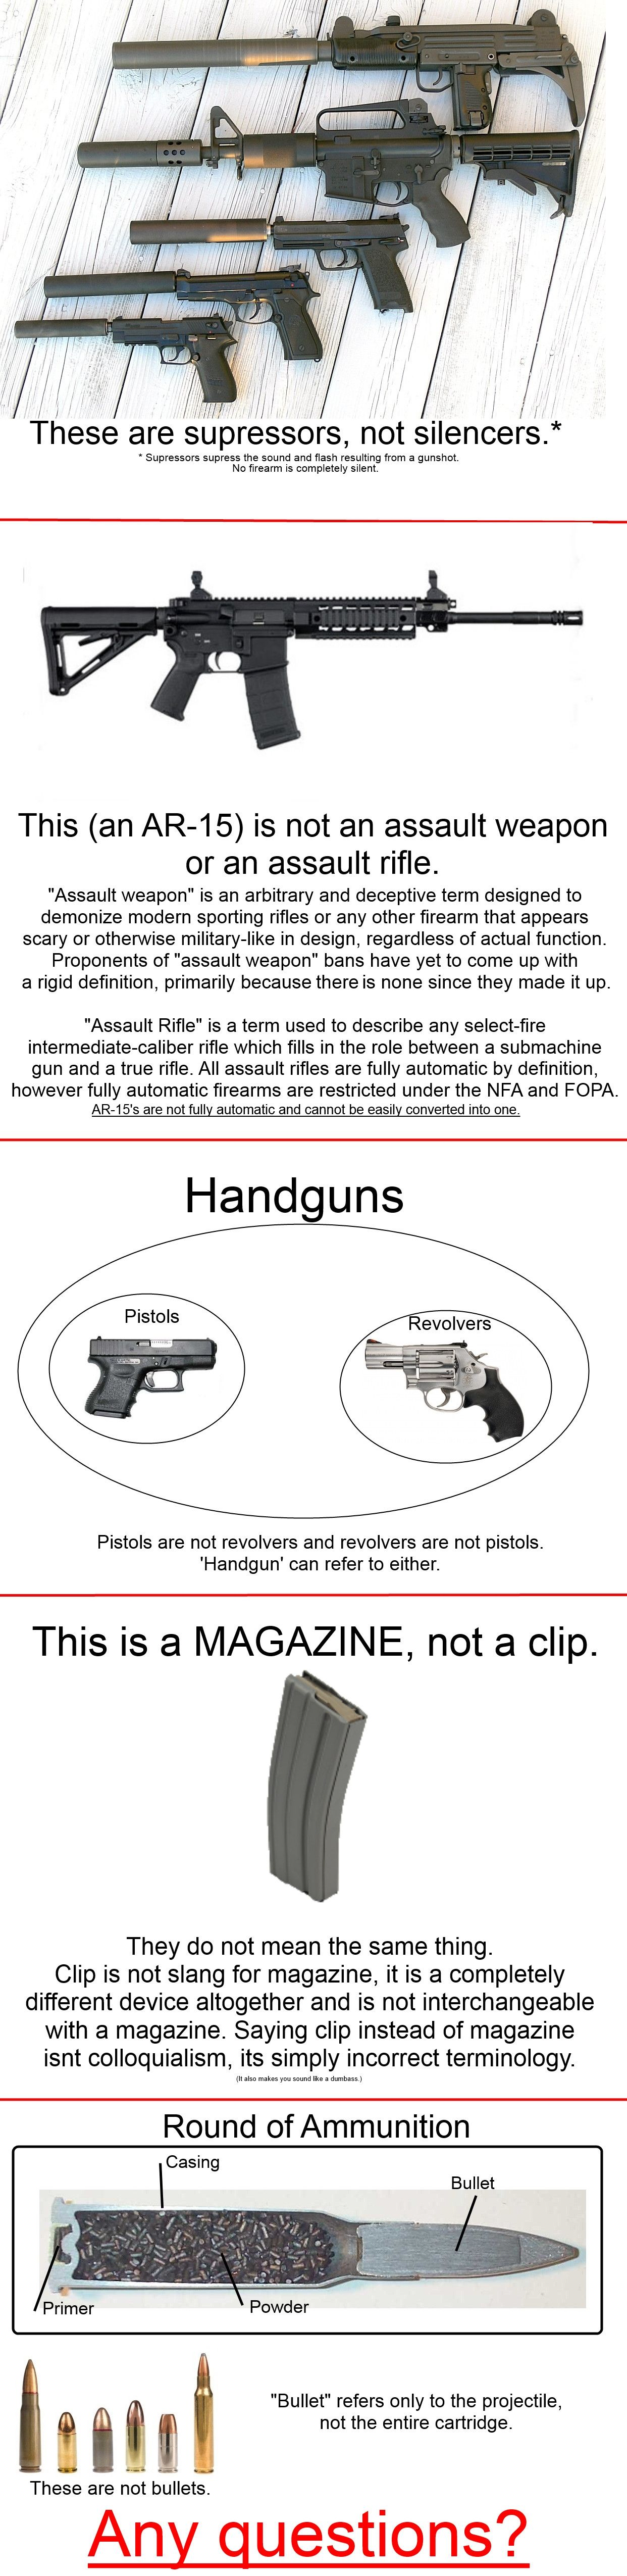 Proper Firearms Terminology for Beginners